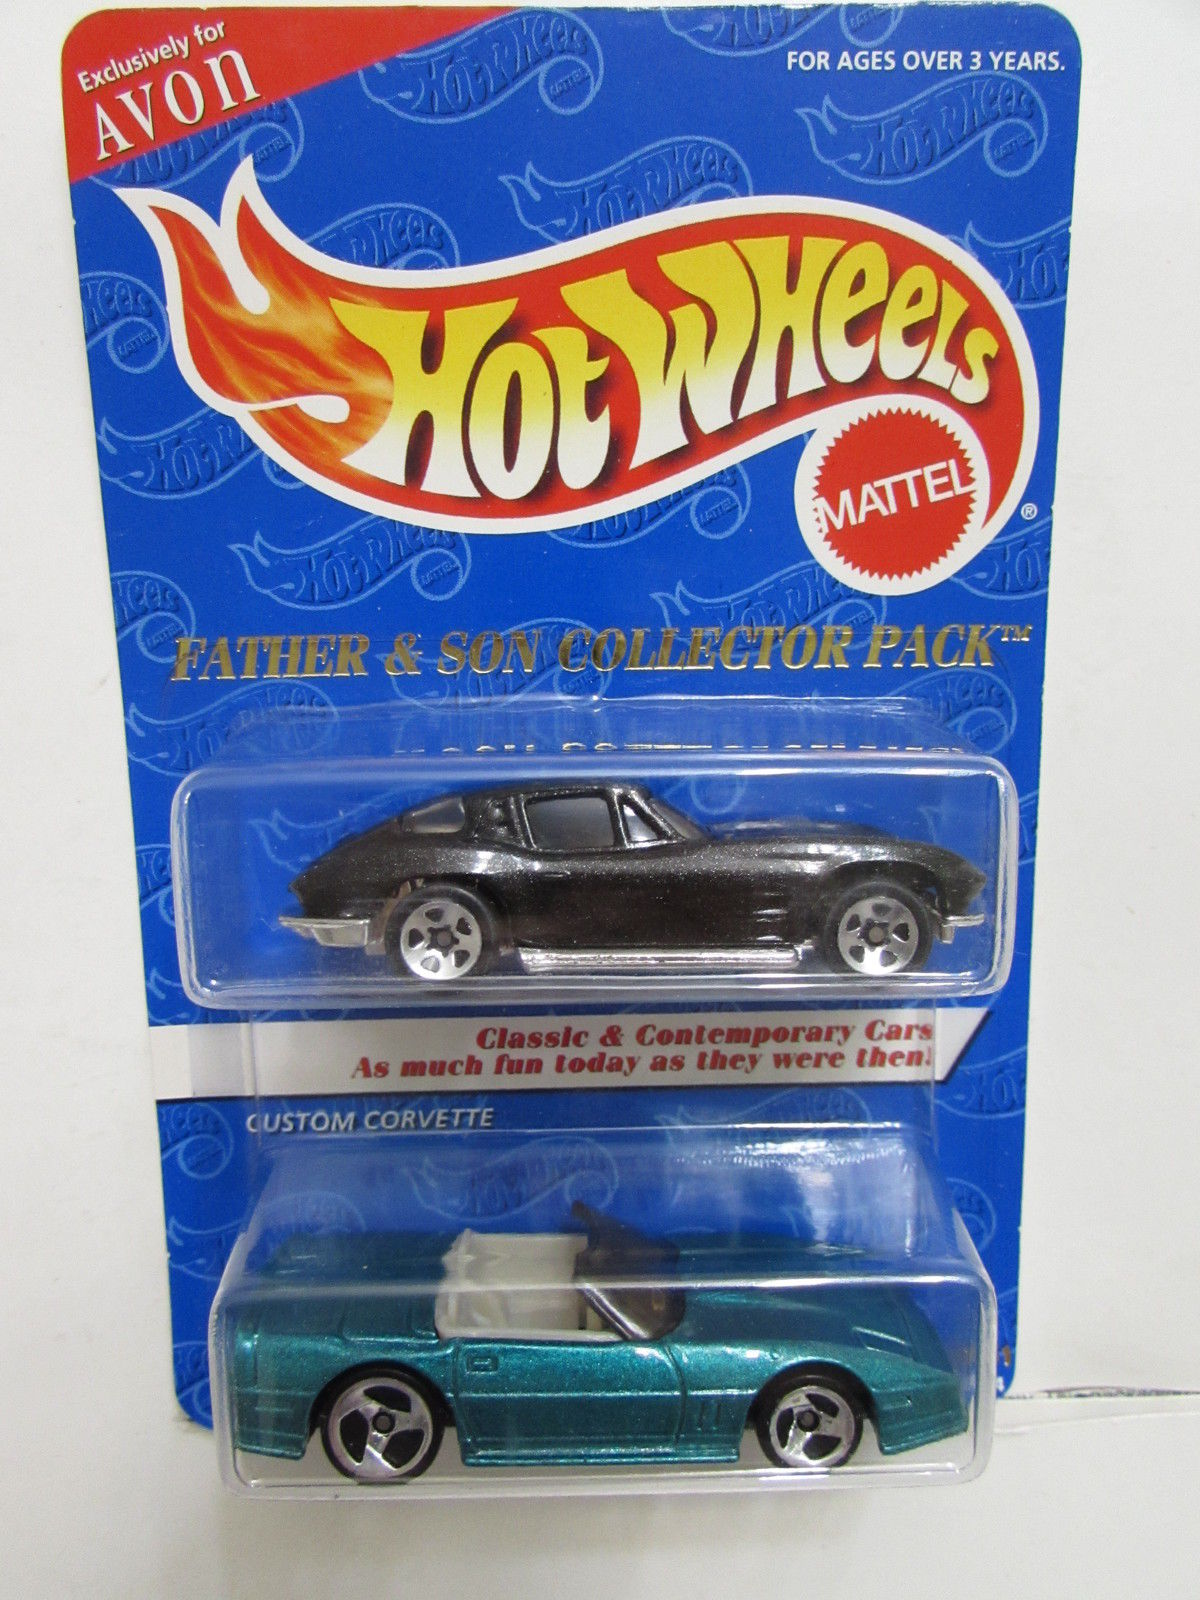 HOT WHEELS FATHER & SON COLLECTOR 2 CAR PACK SPLIT WINDOW CORVETTE - CUSTOM